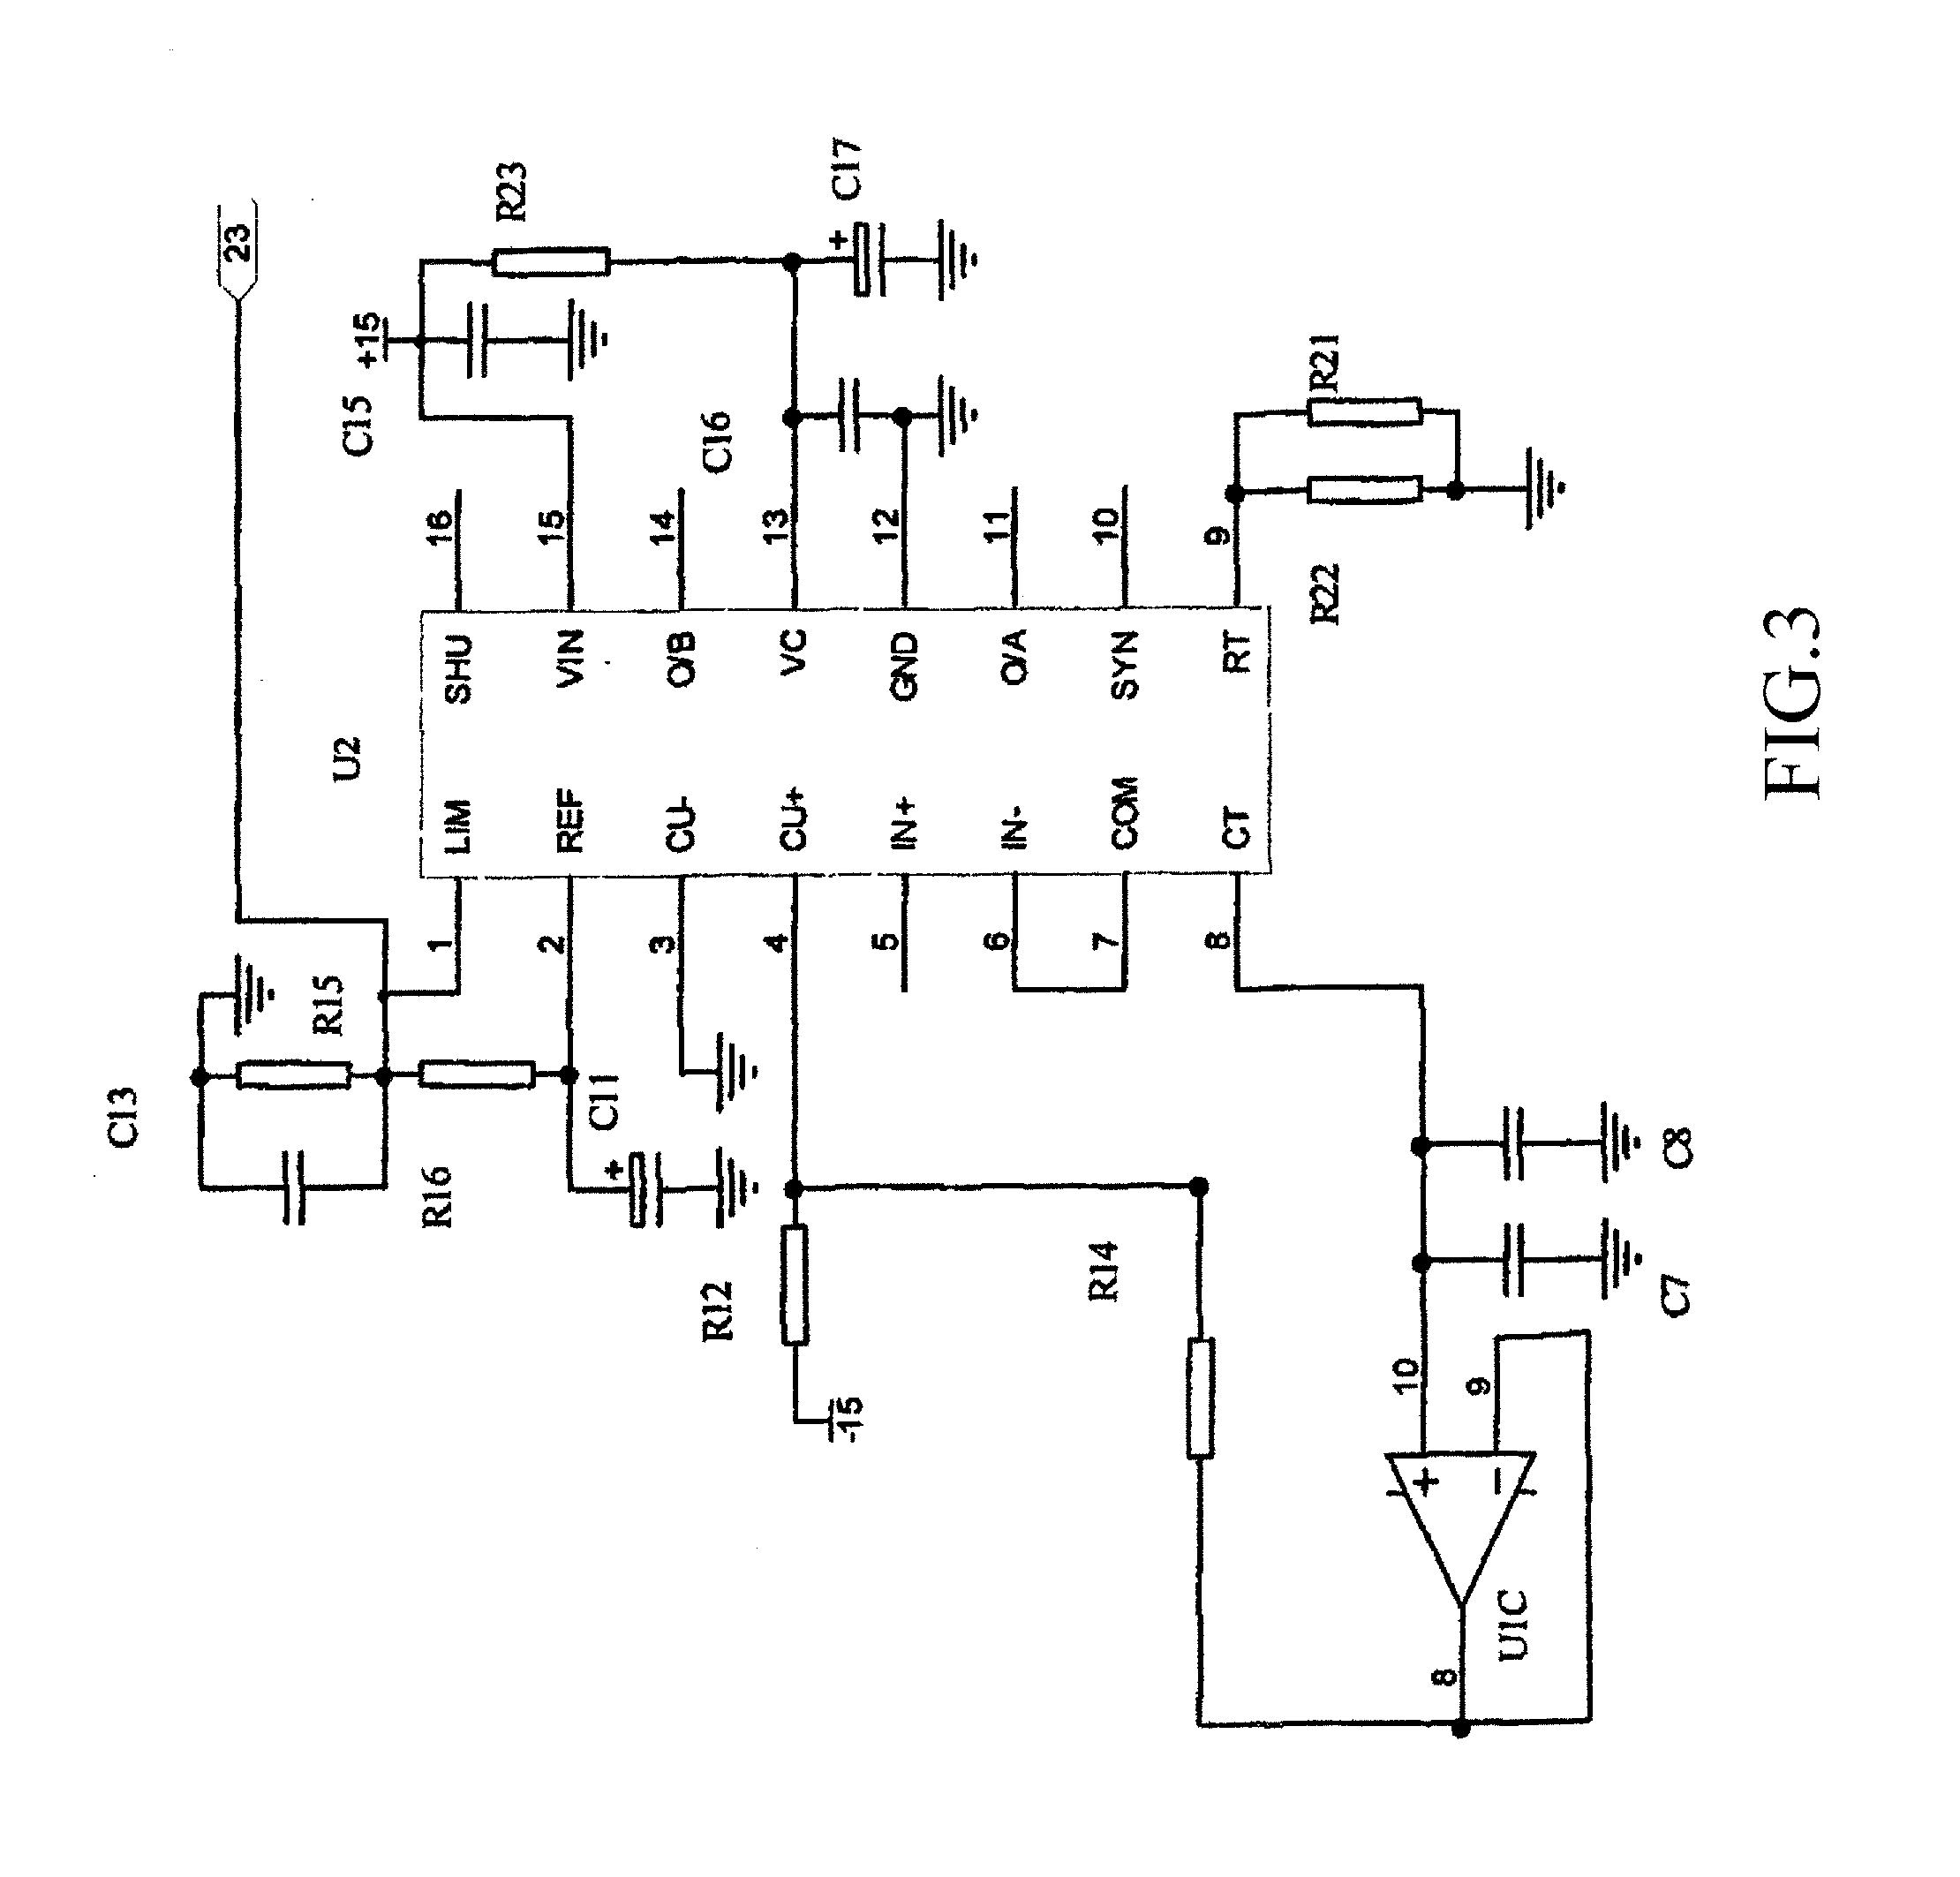 inverter welding machine diagram 200 lincoln welding machine wiring diagram patent us20140209586 - portable igbt arc welding machine ...